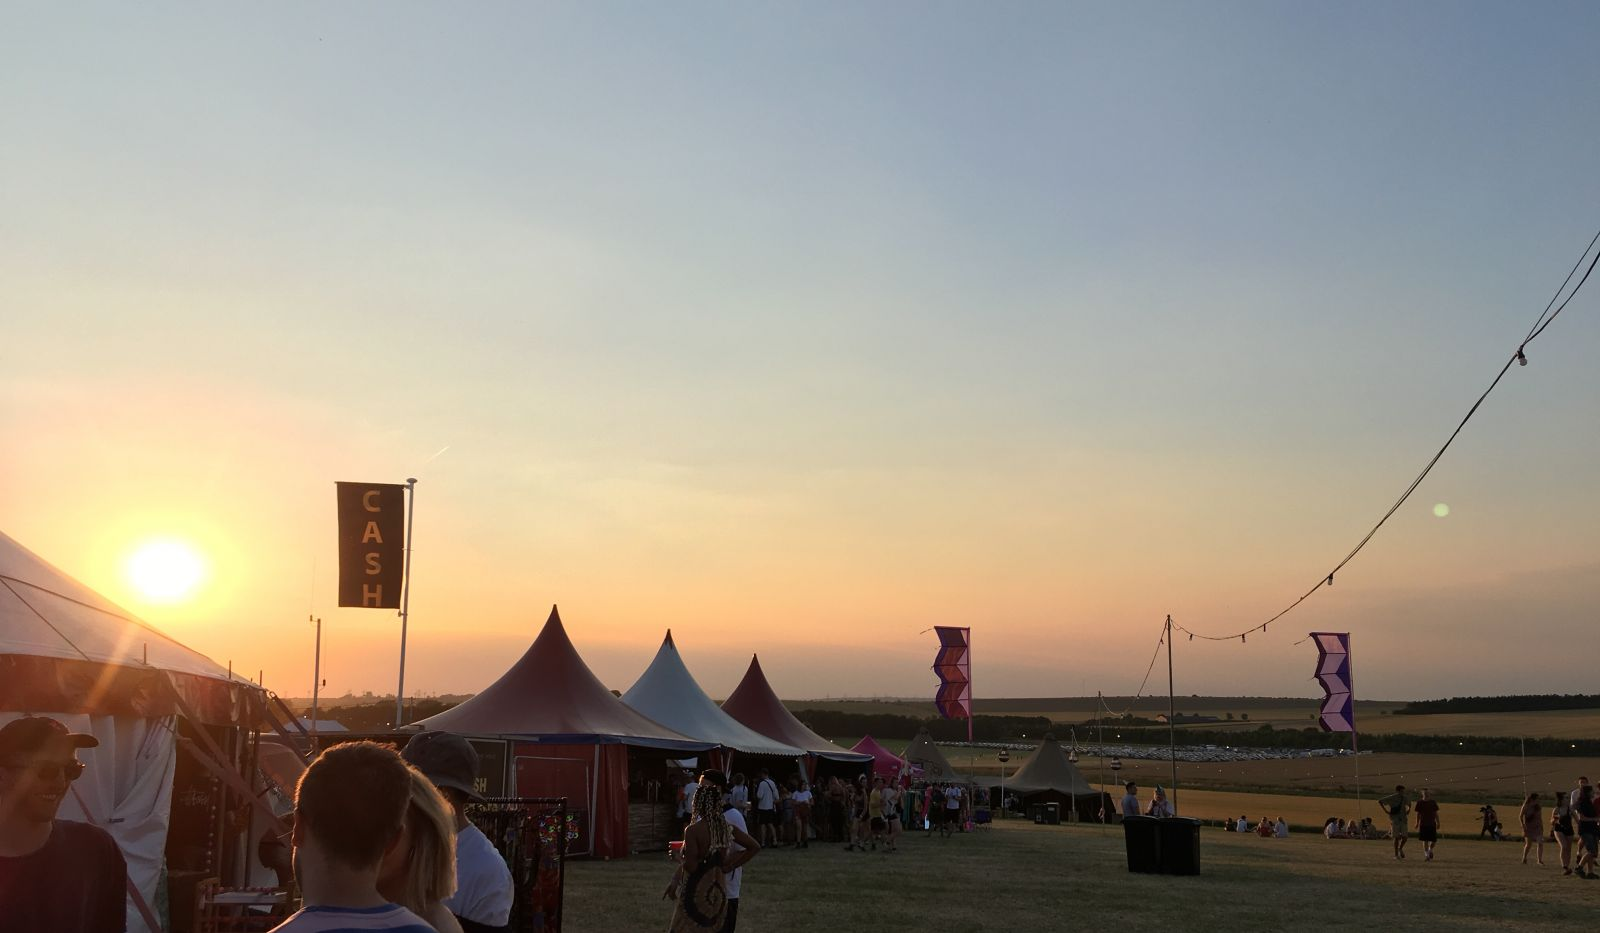 The sun sets over the beautiful Farr Festival site.